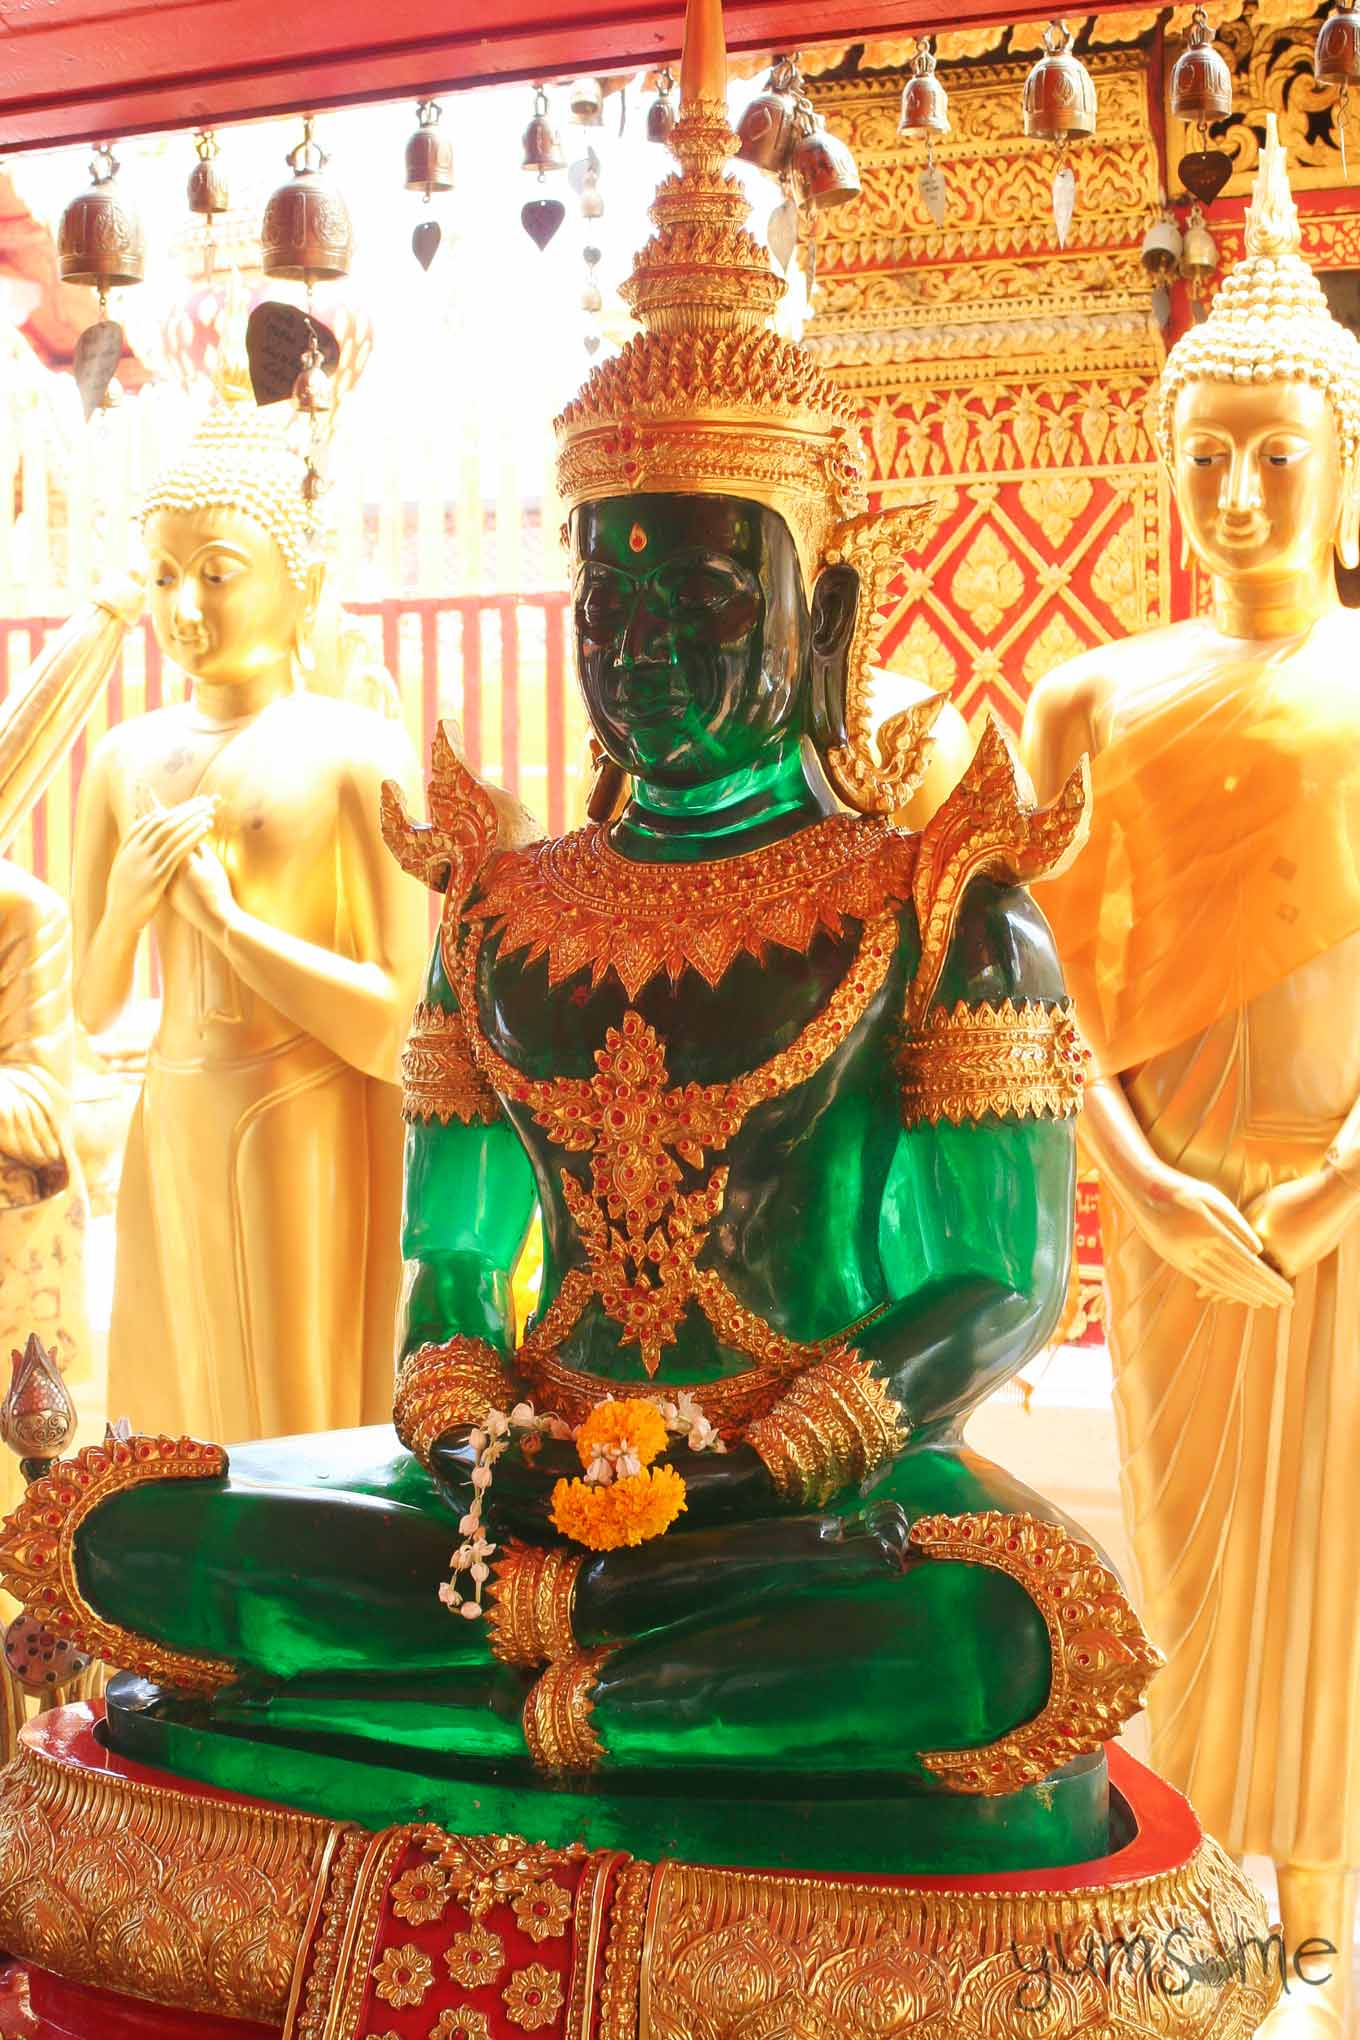 Emerald Buddha statue, seated in the meditation pose.